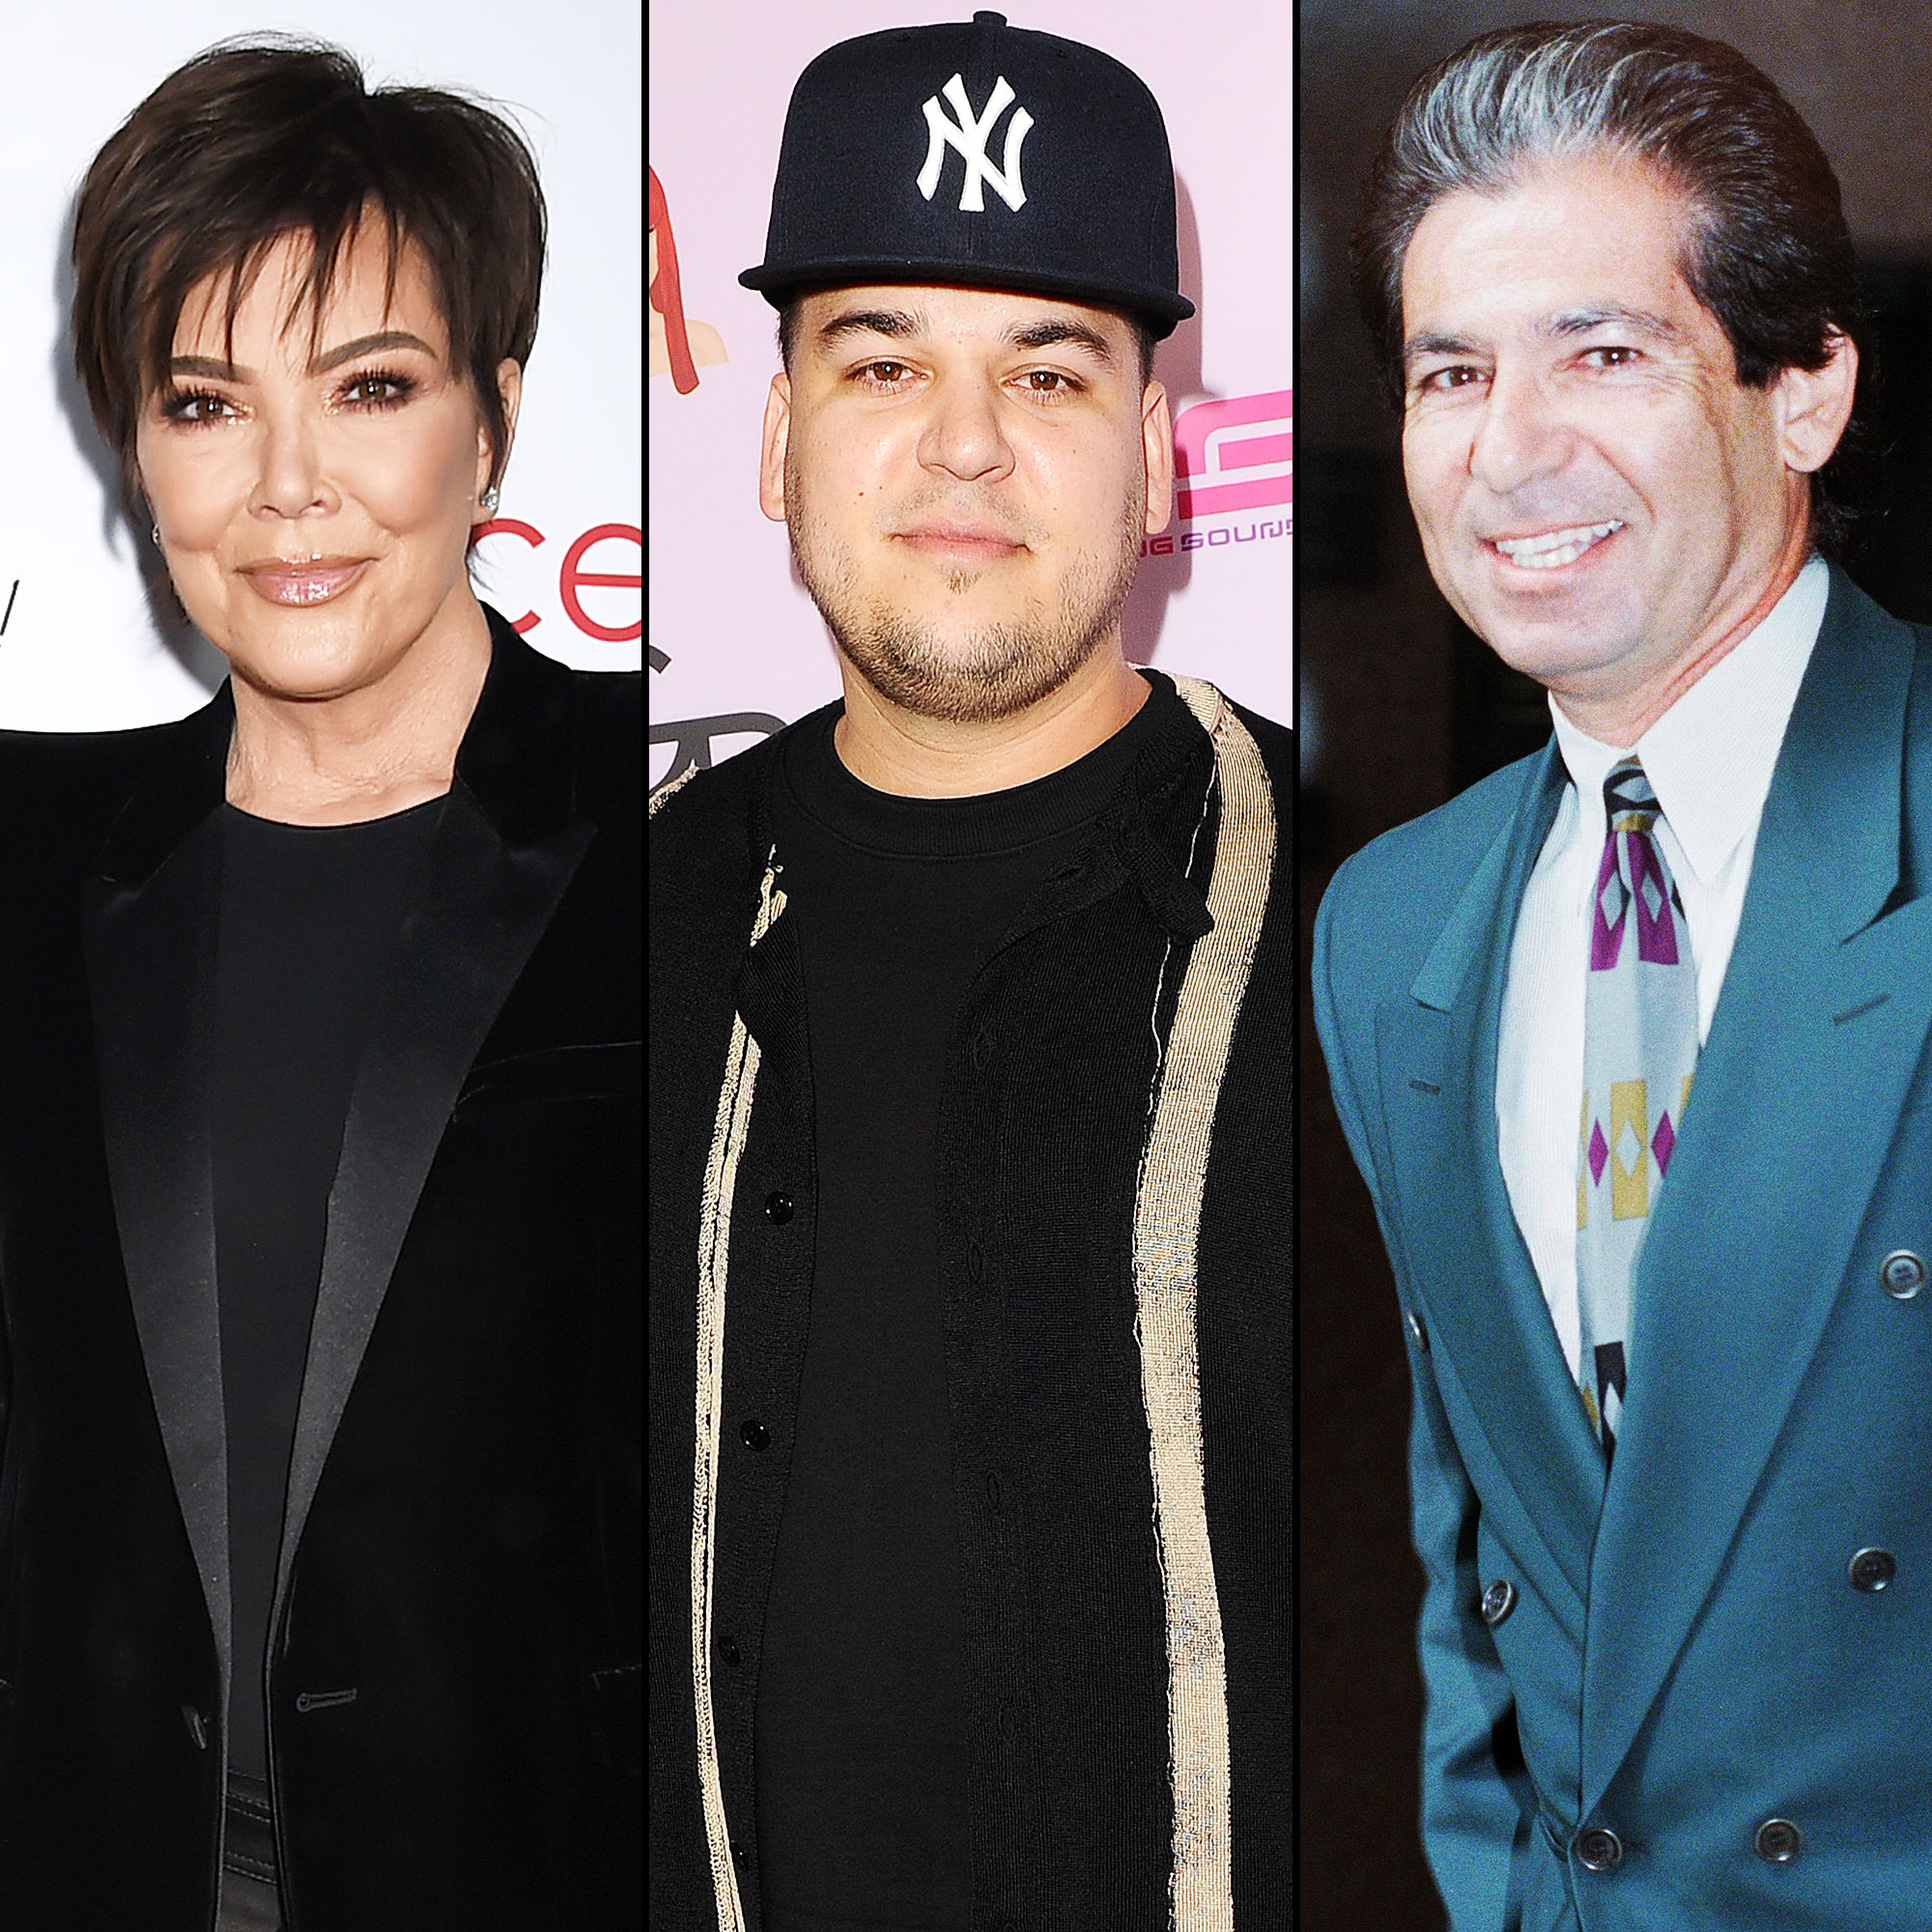 Kris Jenner Says Son Rob Kardashian Is Still Not Over His Father Robert Kardashian's 2003 Death